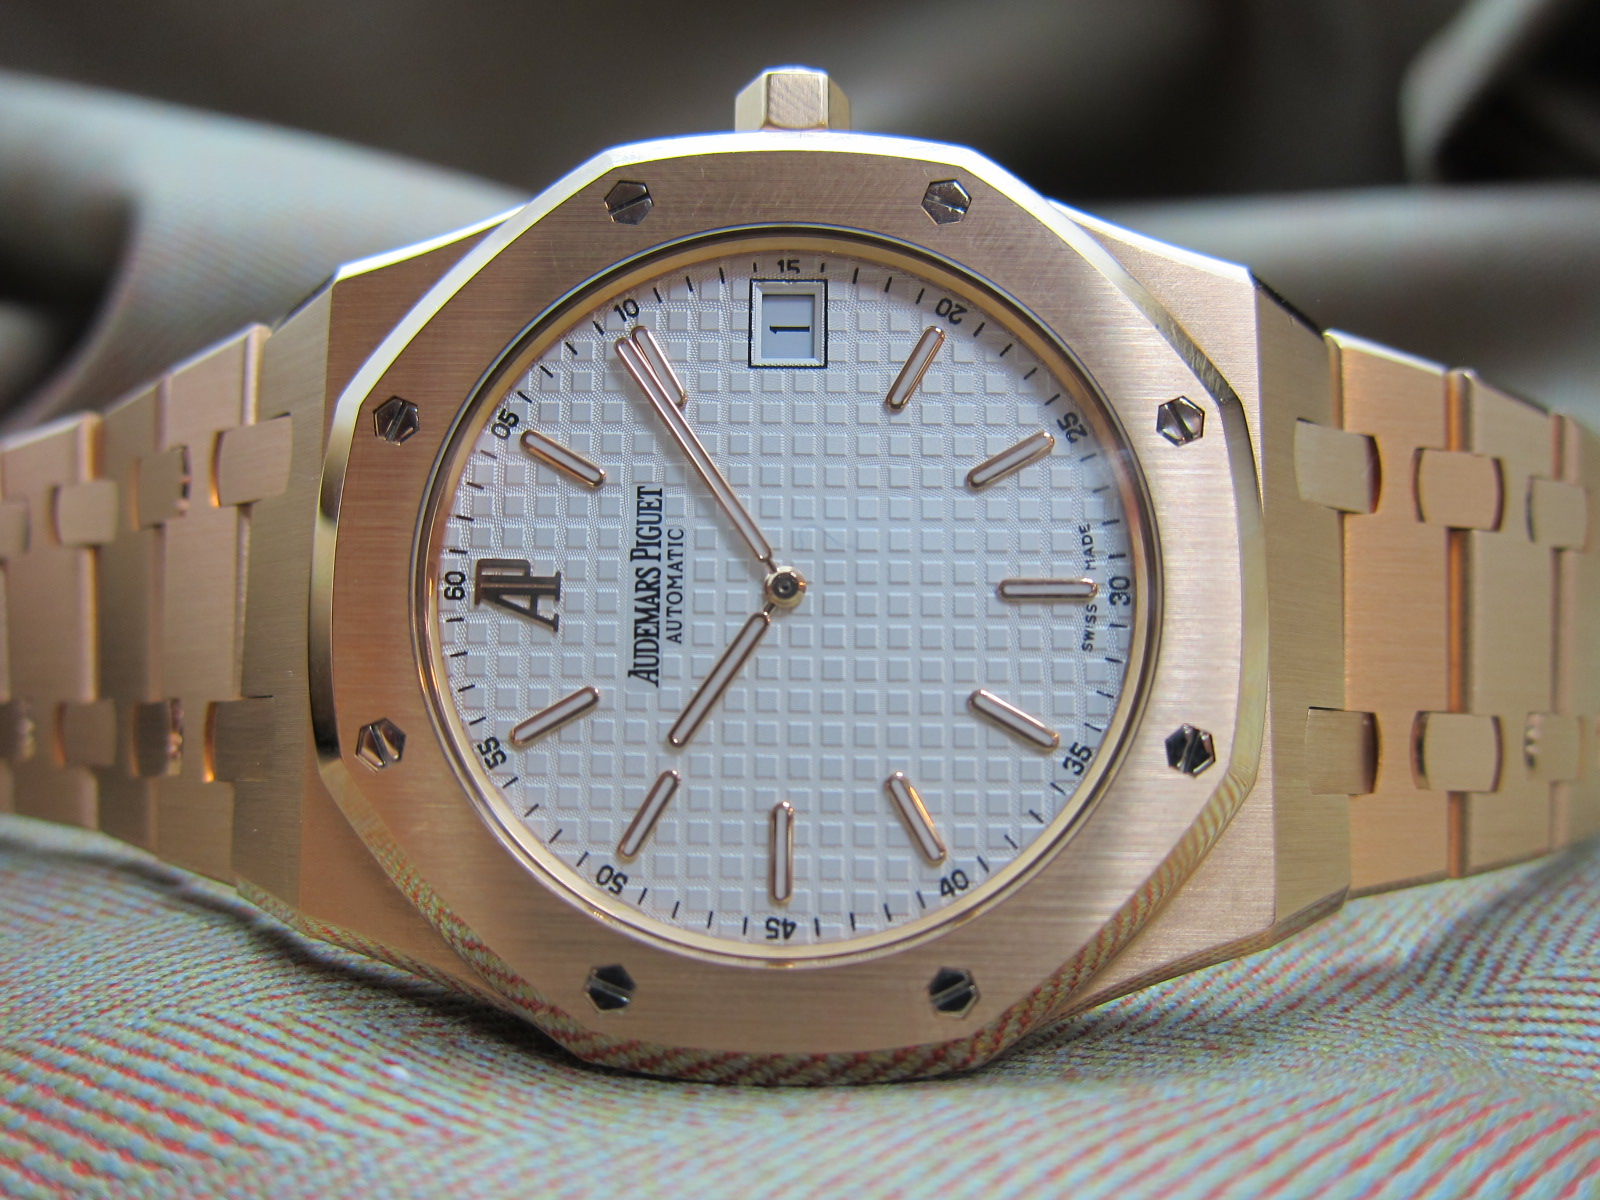 Rose Gold Jumbo 15202 white dial